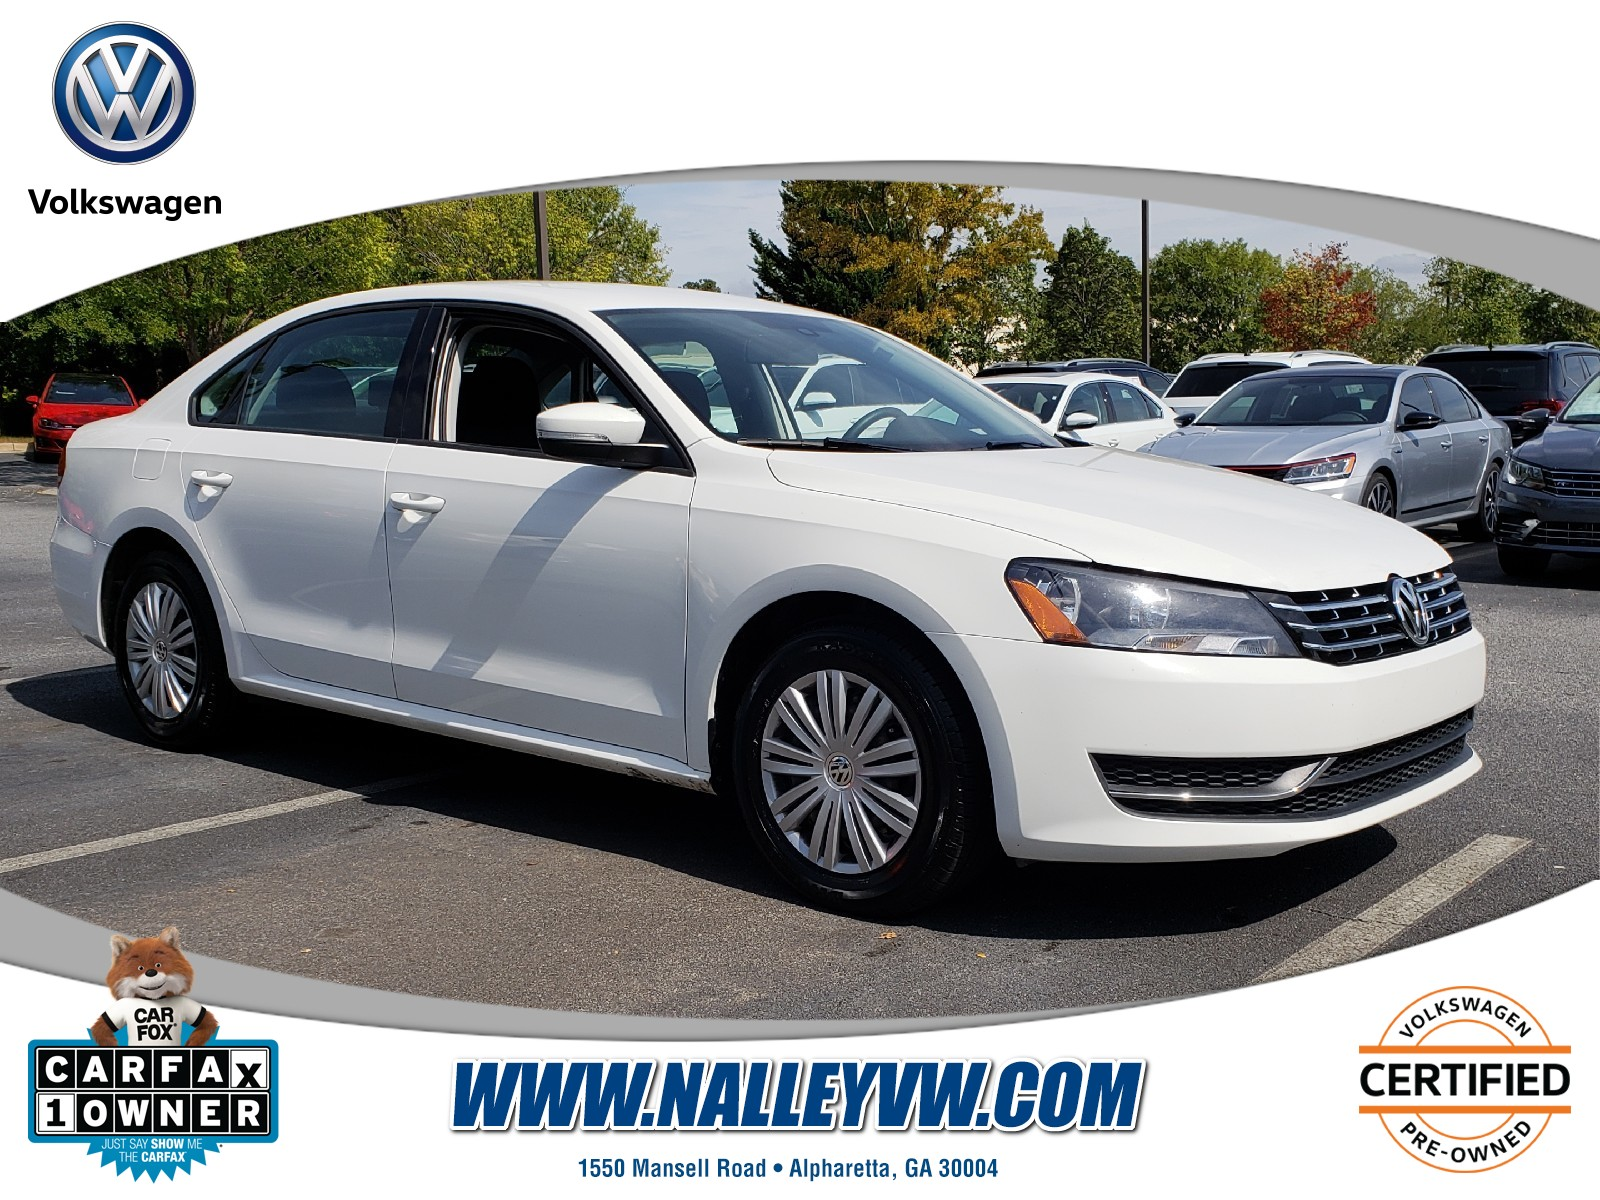 Volkswagen Used Cars for Sale Near Me New Used 2015 Volkswagen Passat for Sale